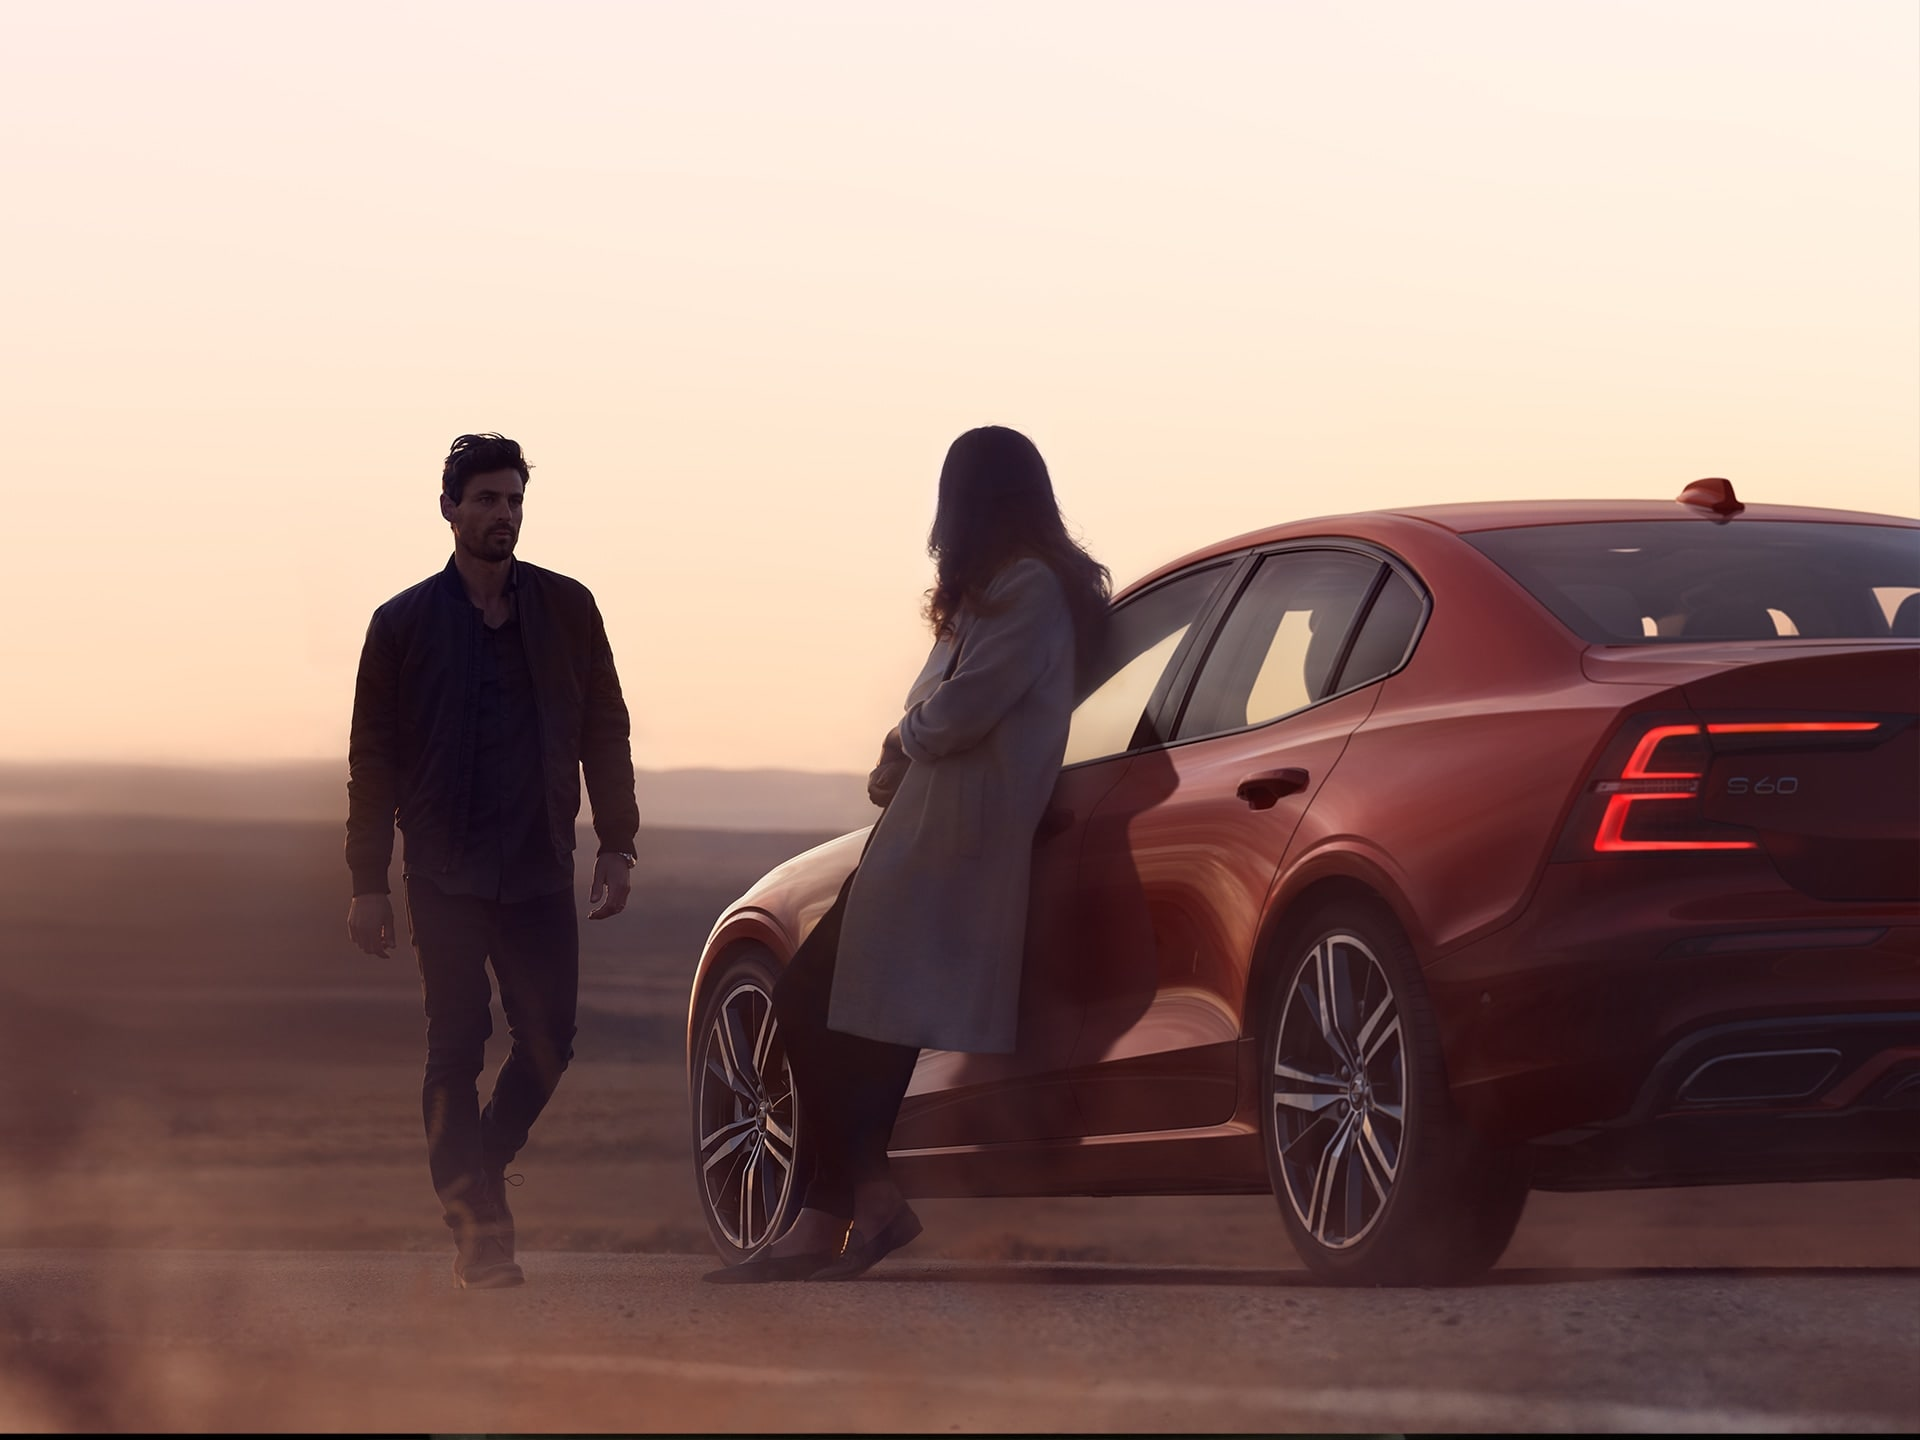 A man and a woman are standing close to their red S60, it is sunset